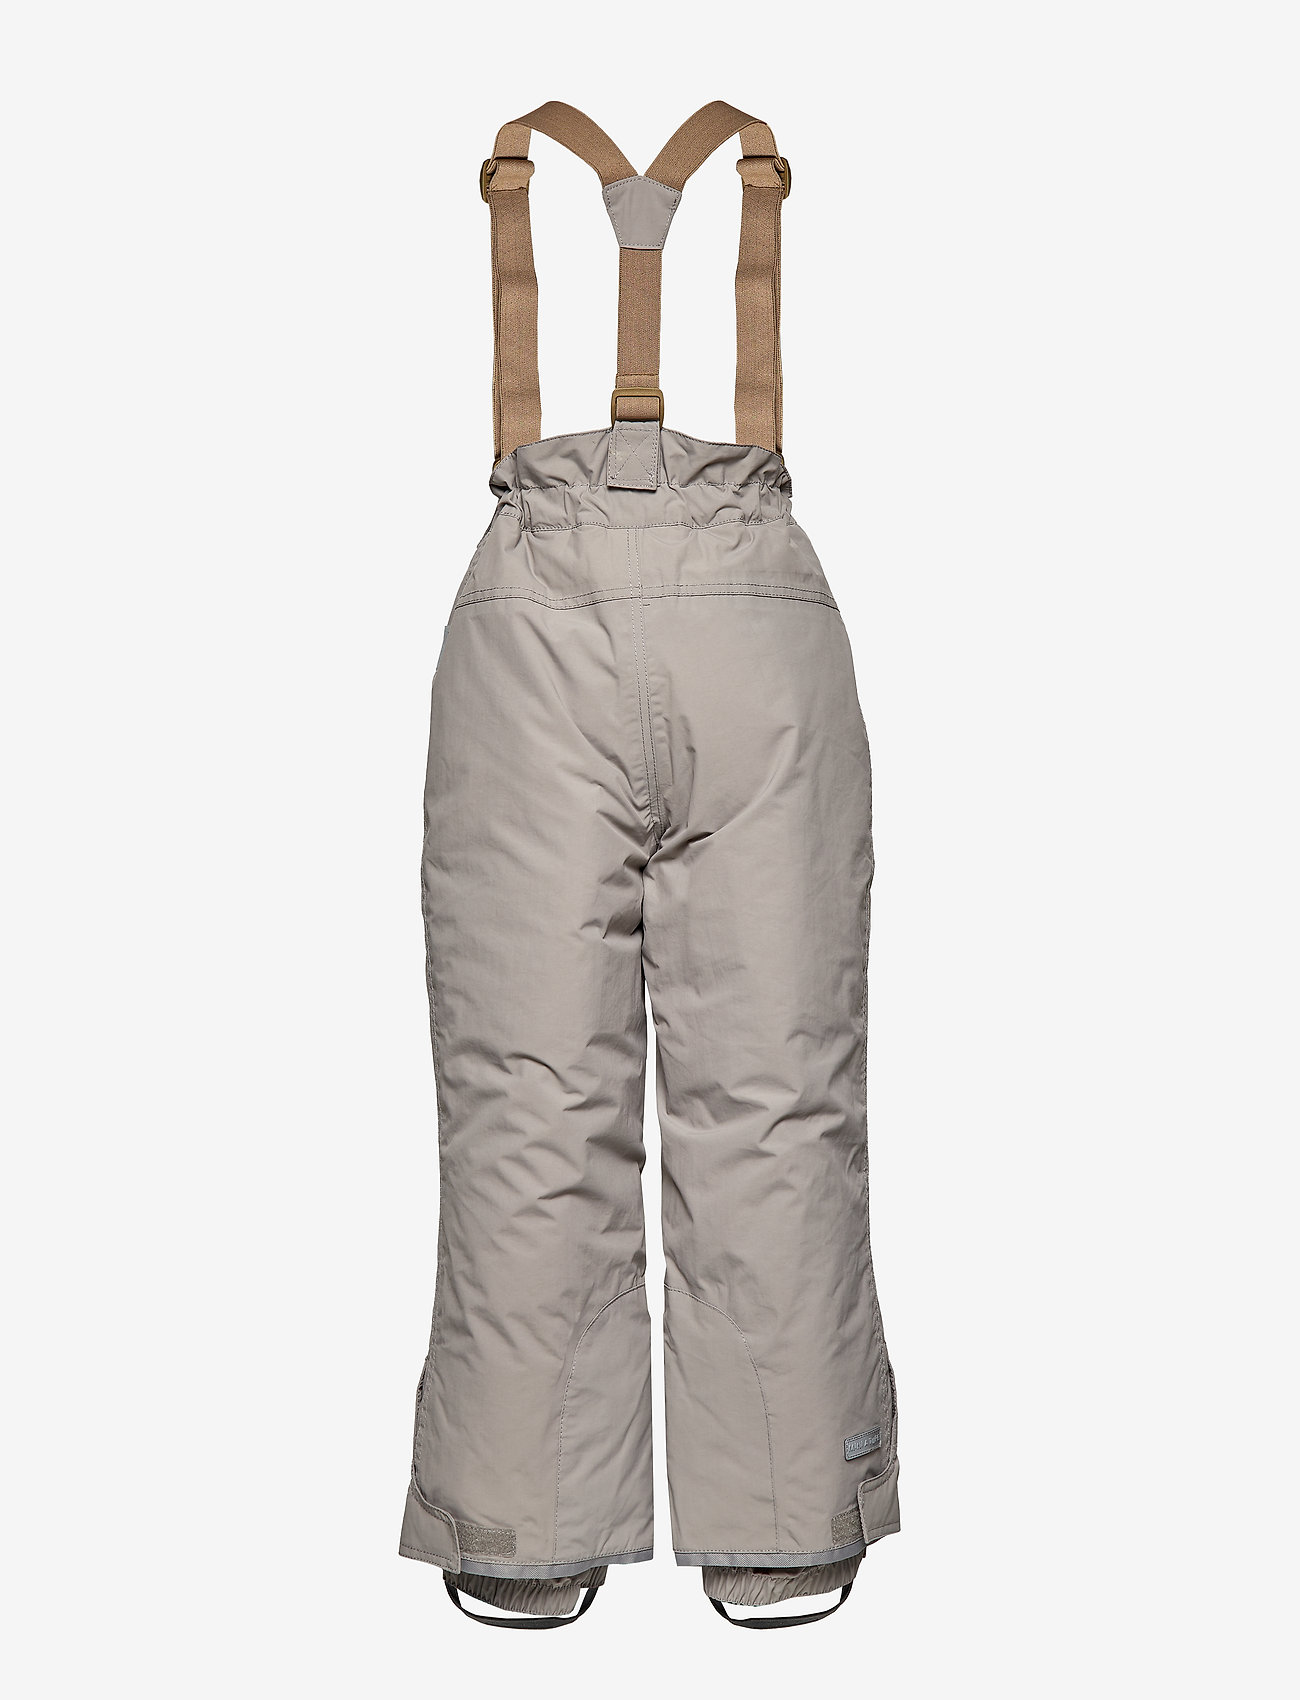 Mini A Ture - Witte Pants, K - schneehose - cloudburst grey - 1